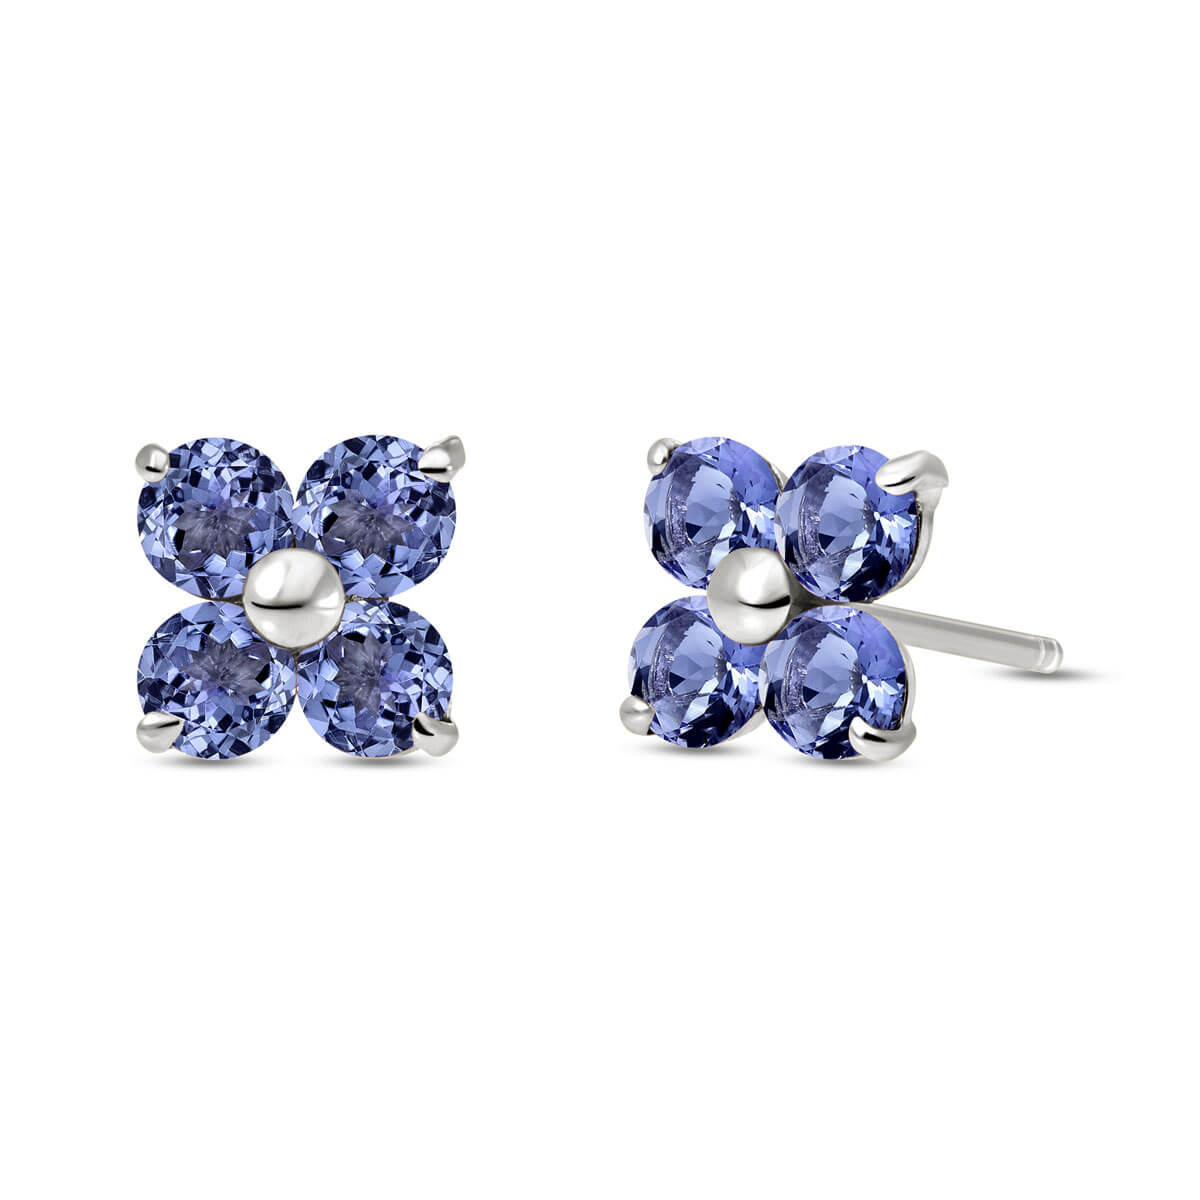 Tanzanite Clover Stud Earrings 1.15 ctw in 9ct White Gold